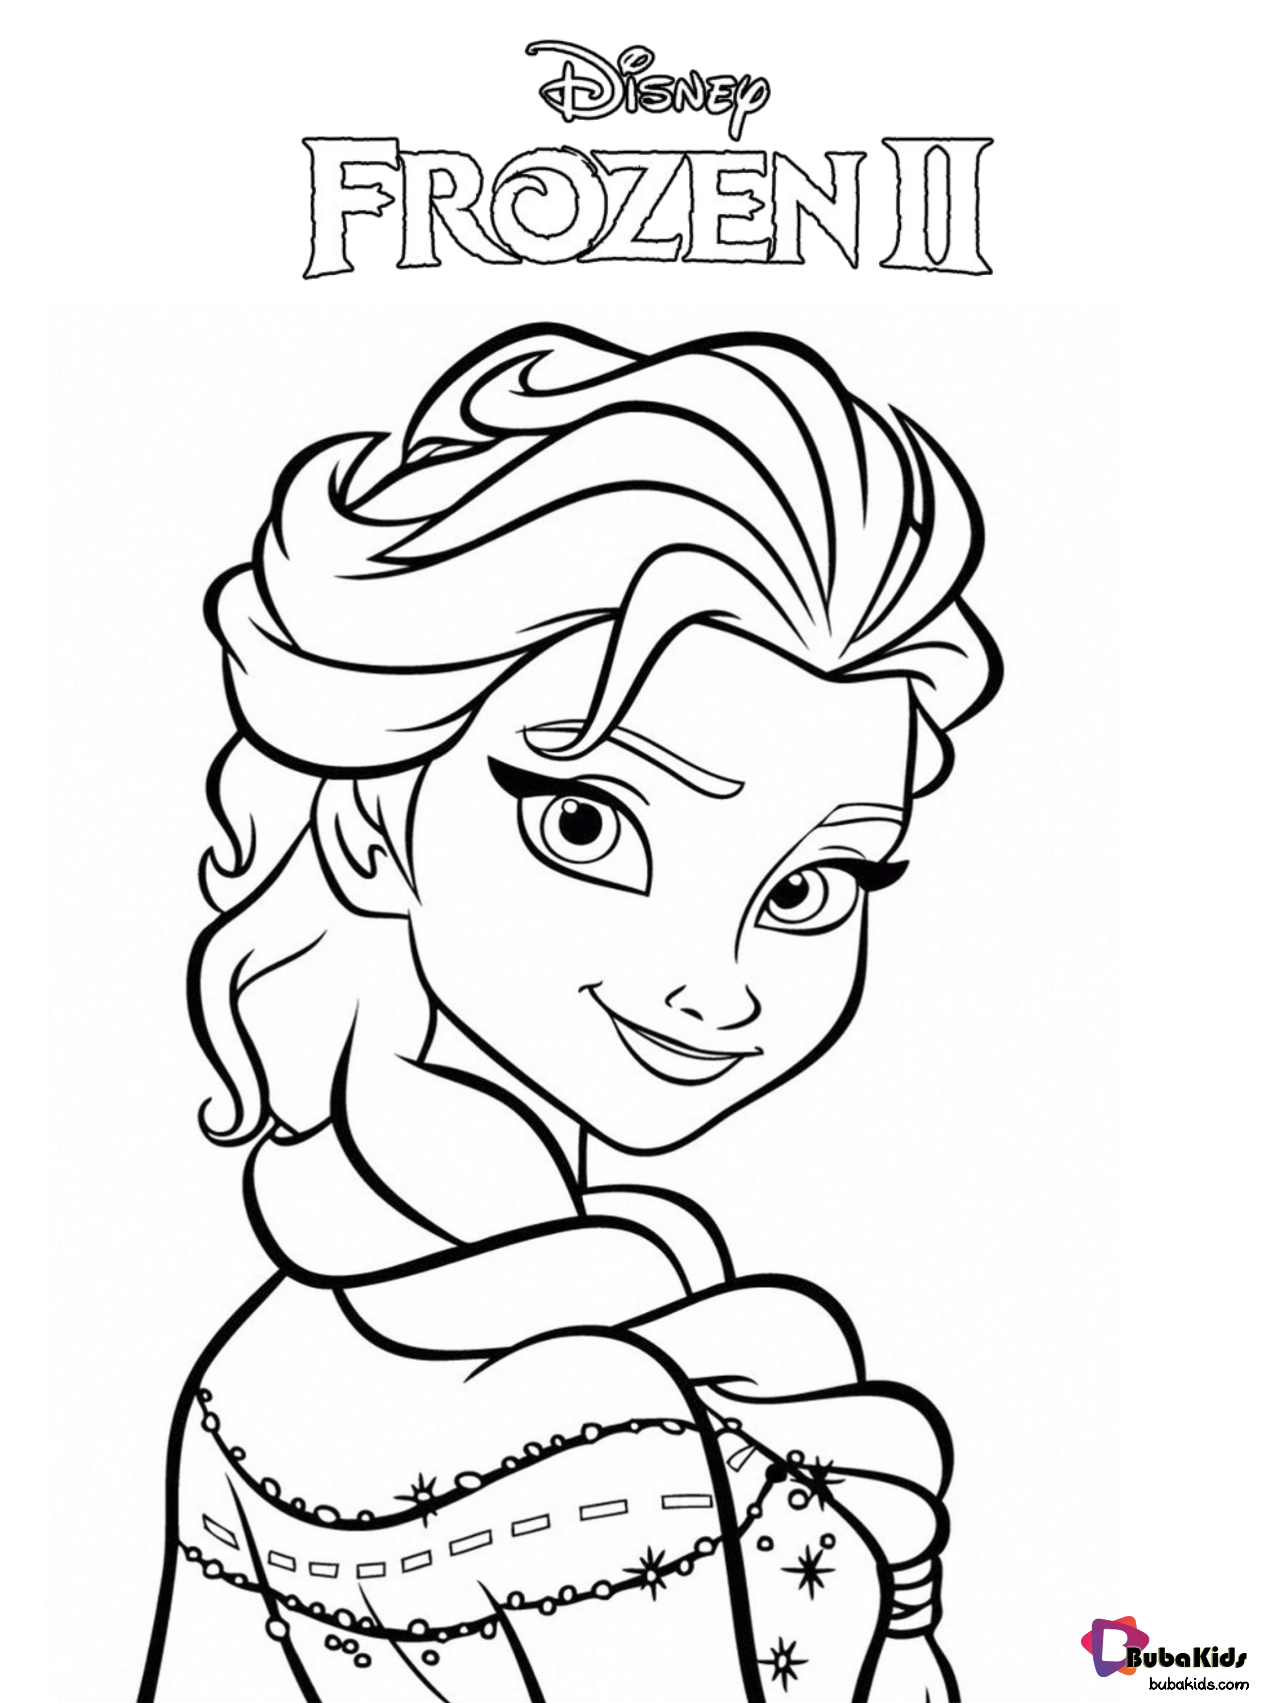 Free Download And Printable Frozen 2 Queen Elsa Coloring Page Elsa Frozen 2 Queen Elsa Elsa Fr Elsa Coloring Pages Frozen Coloring Frozen Coloring Pages